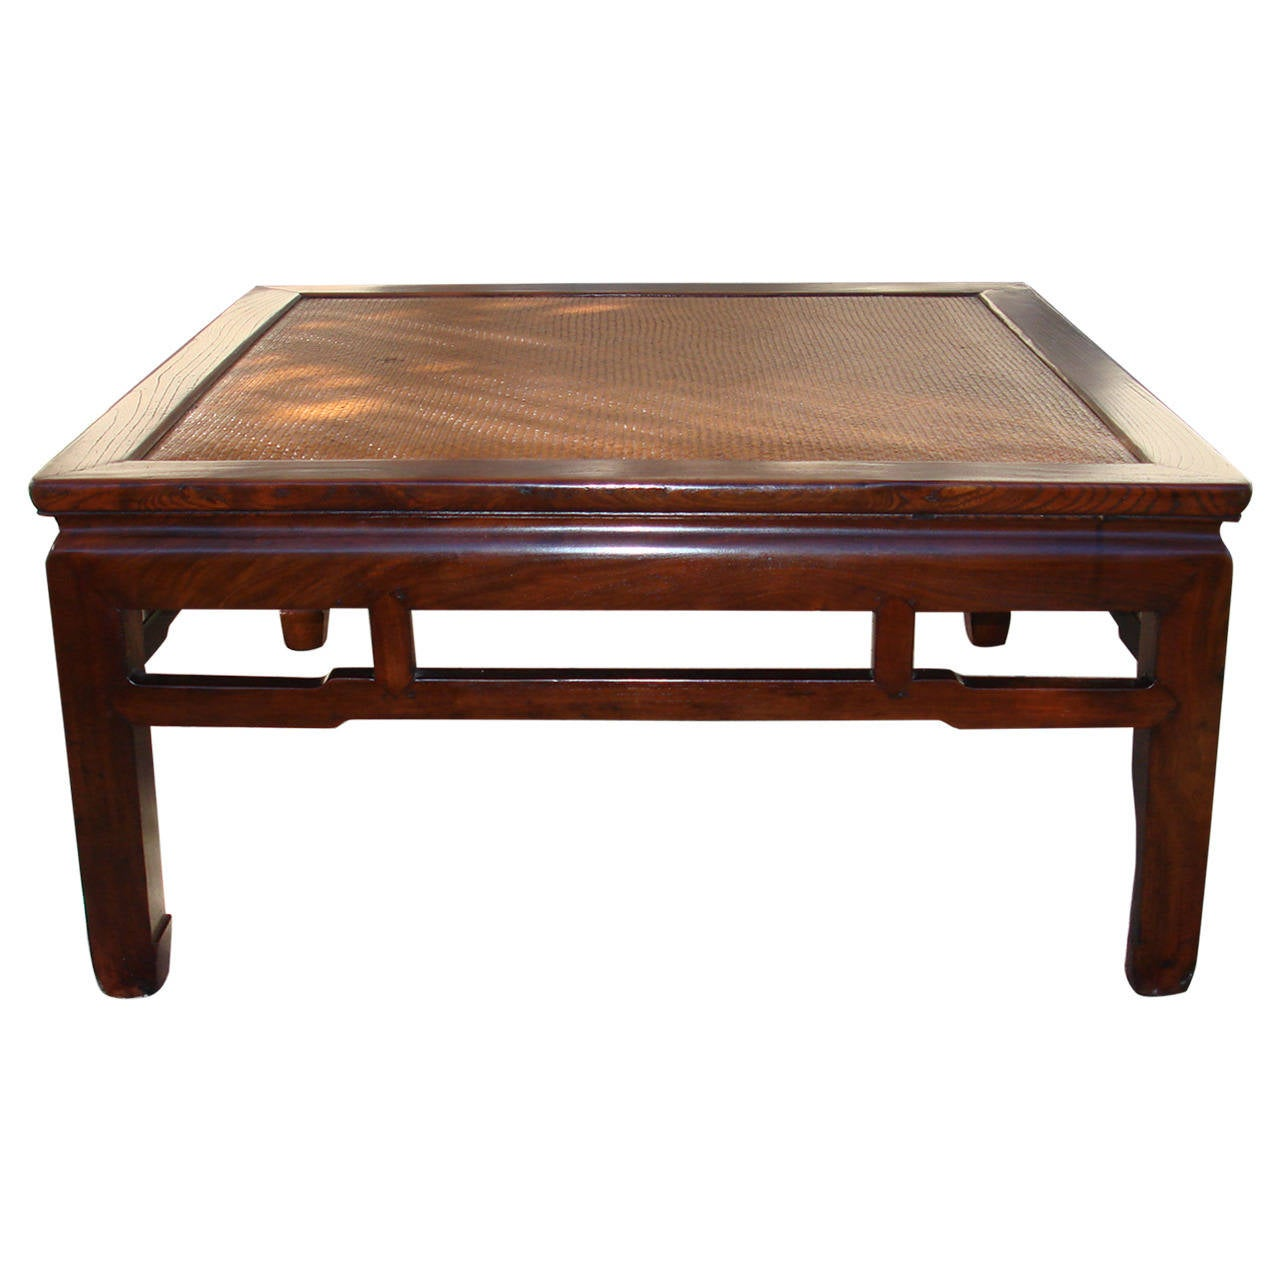 Square jumu wood low table with cane top for sale at 1stdibs for Low coffee table wood